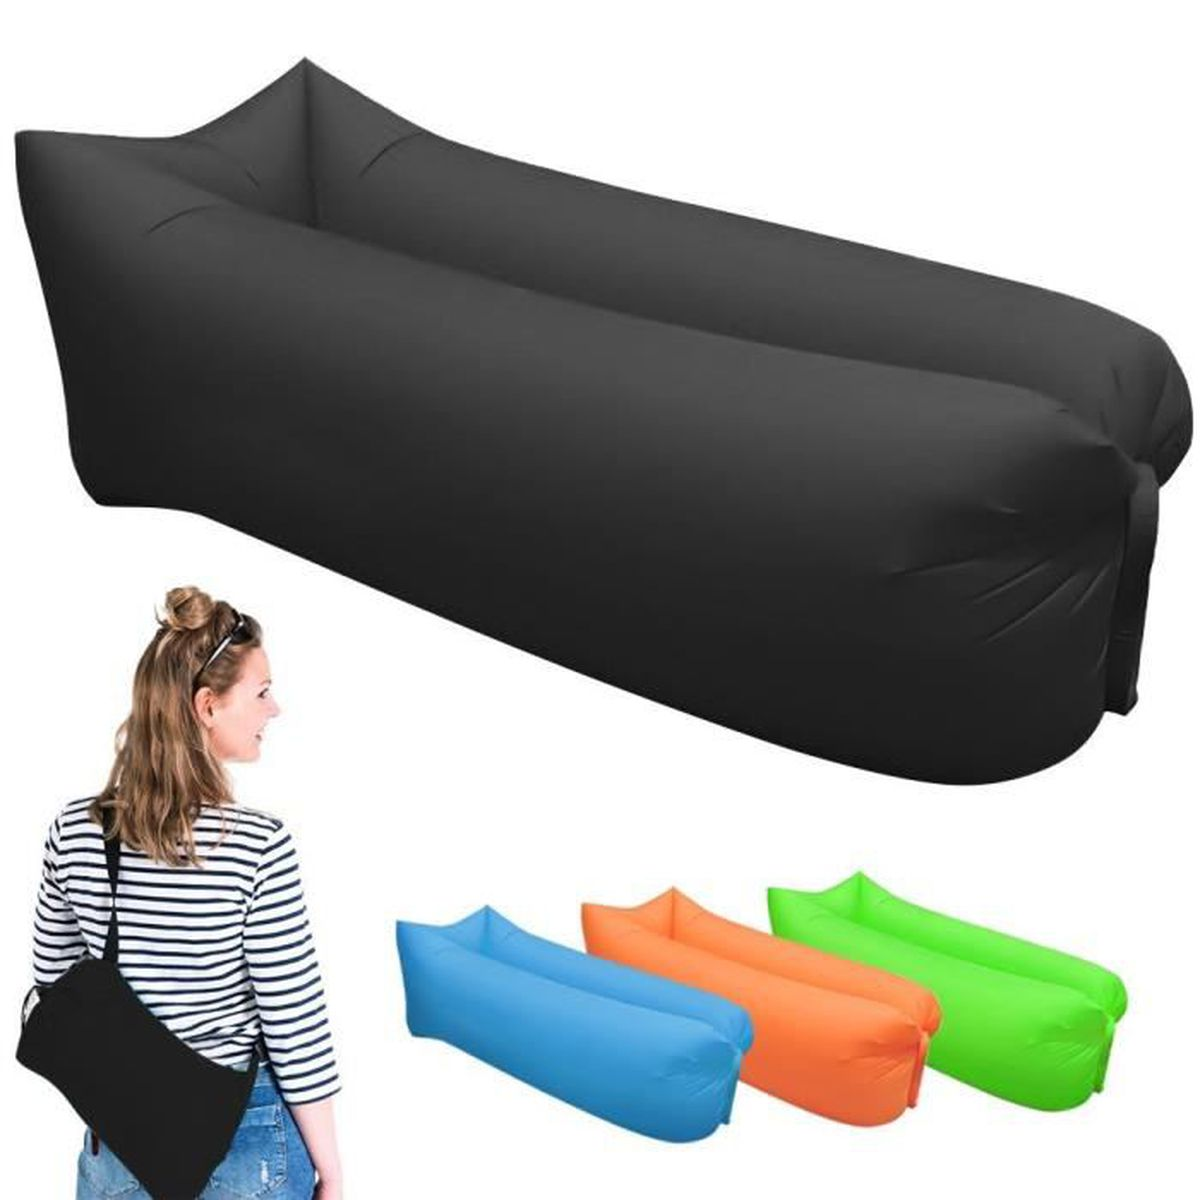 noir rapide gonflable canap air sommeil camping sofa. Black Bedroom Furniture Sets. Home Design Ideas